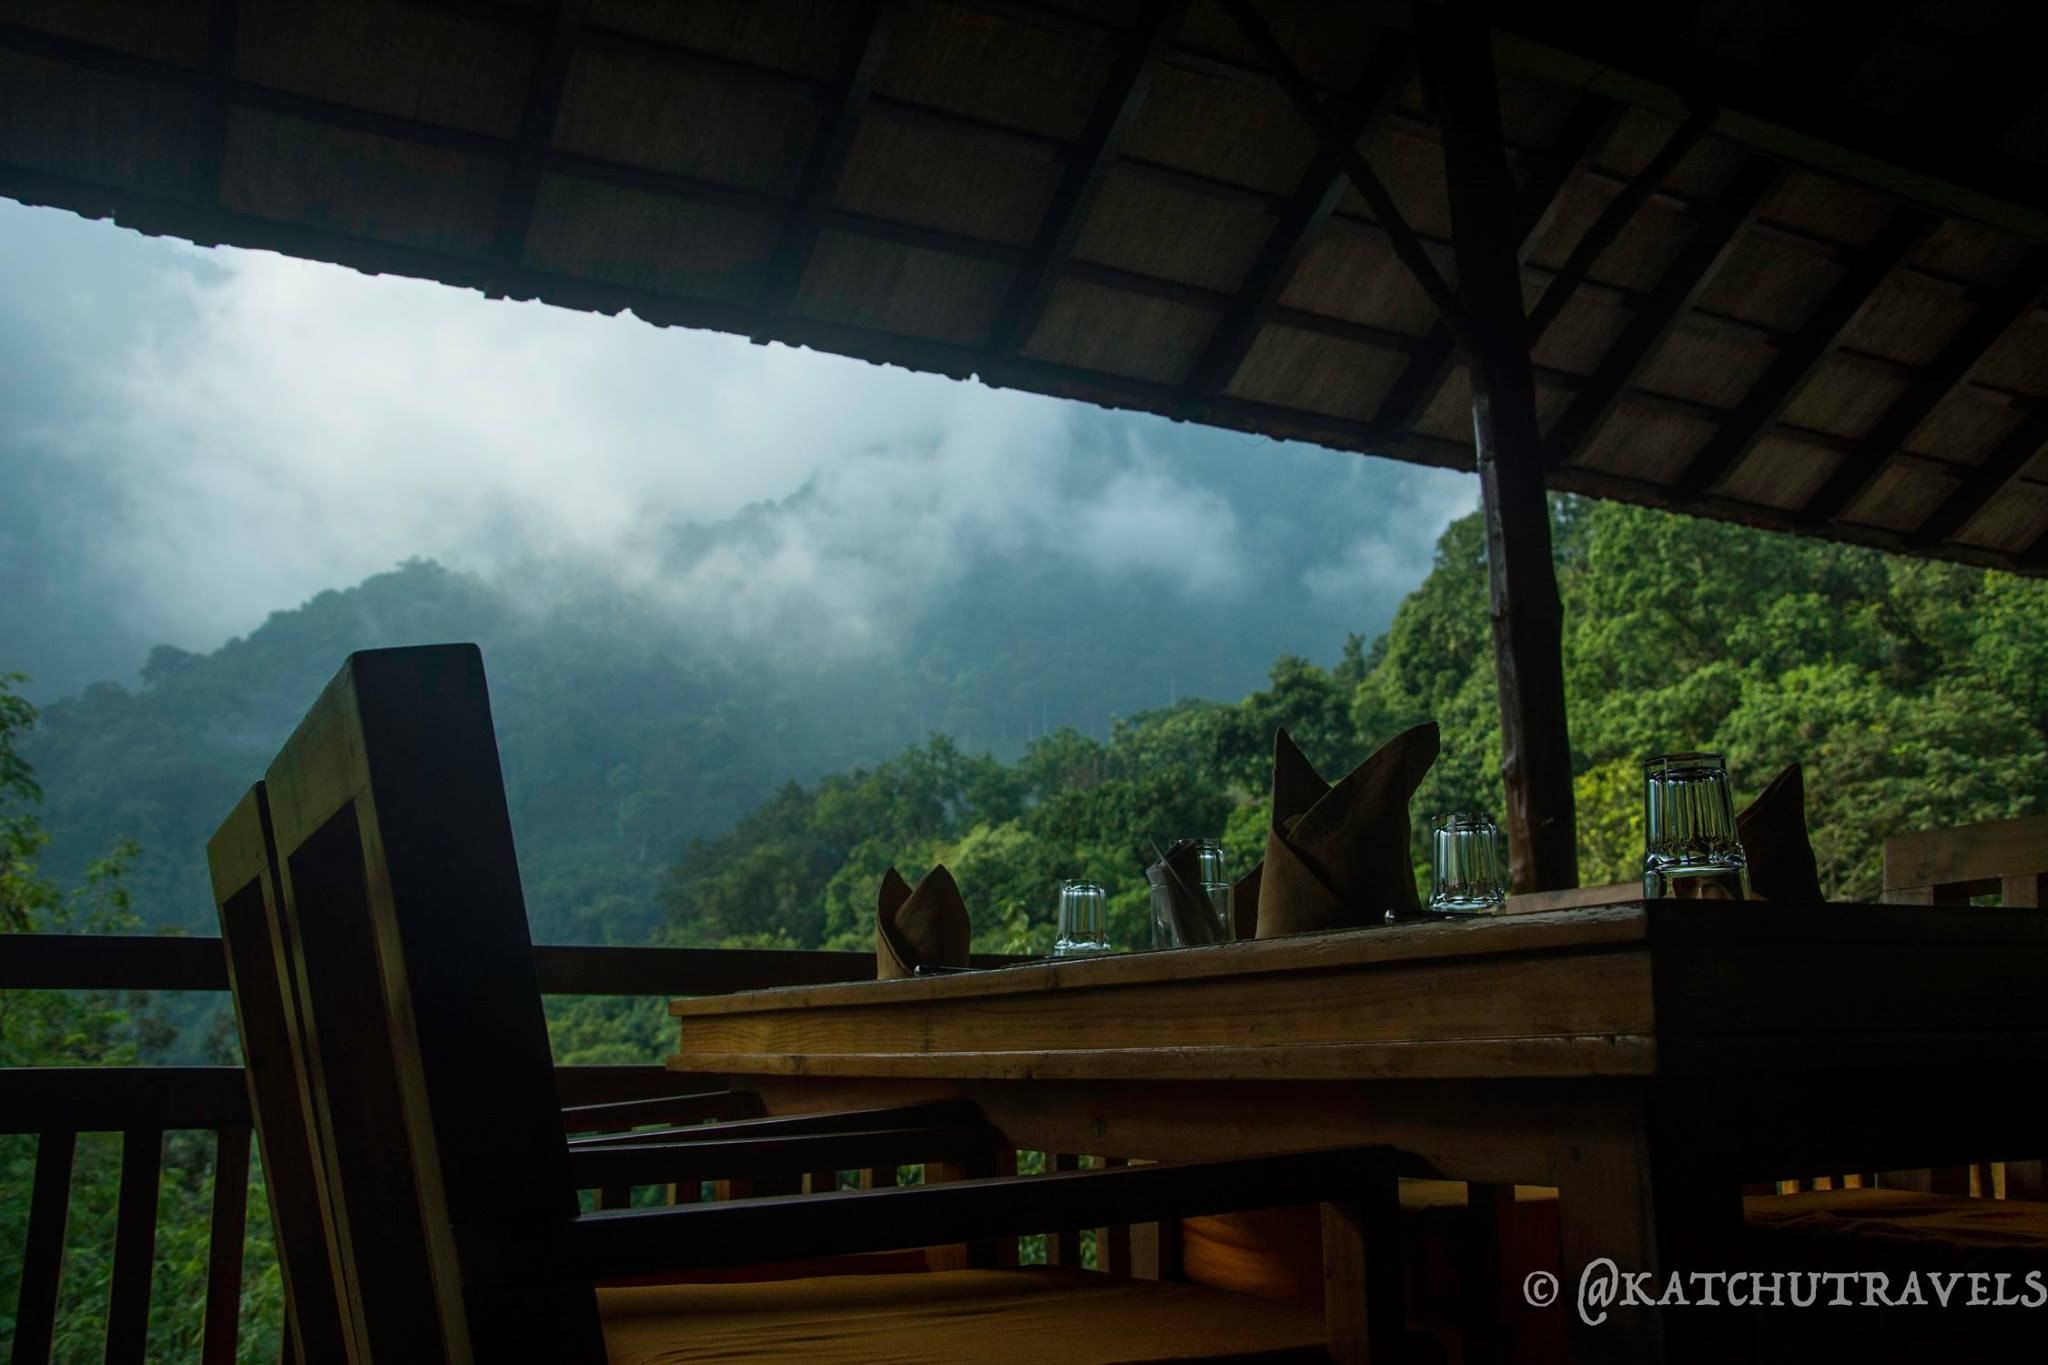 Dining against the backdrop of the Bakasura Mountains